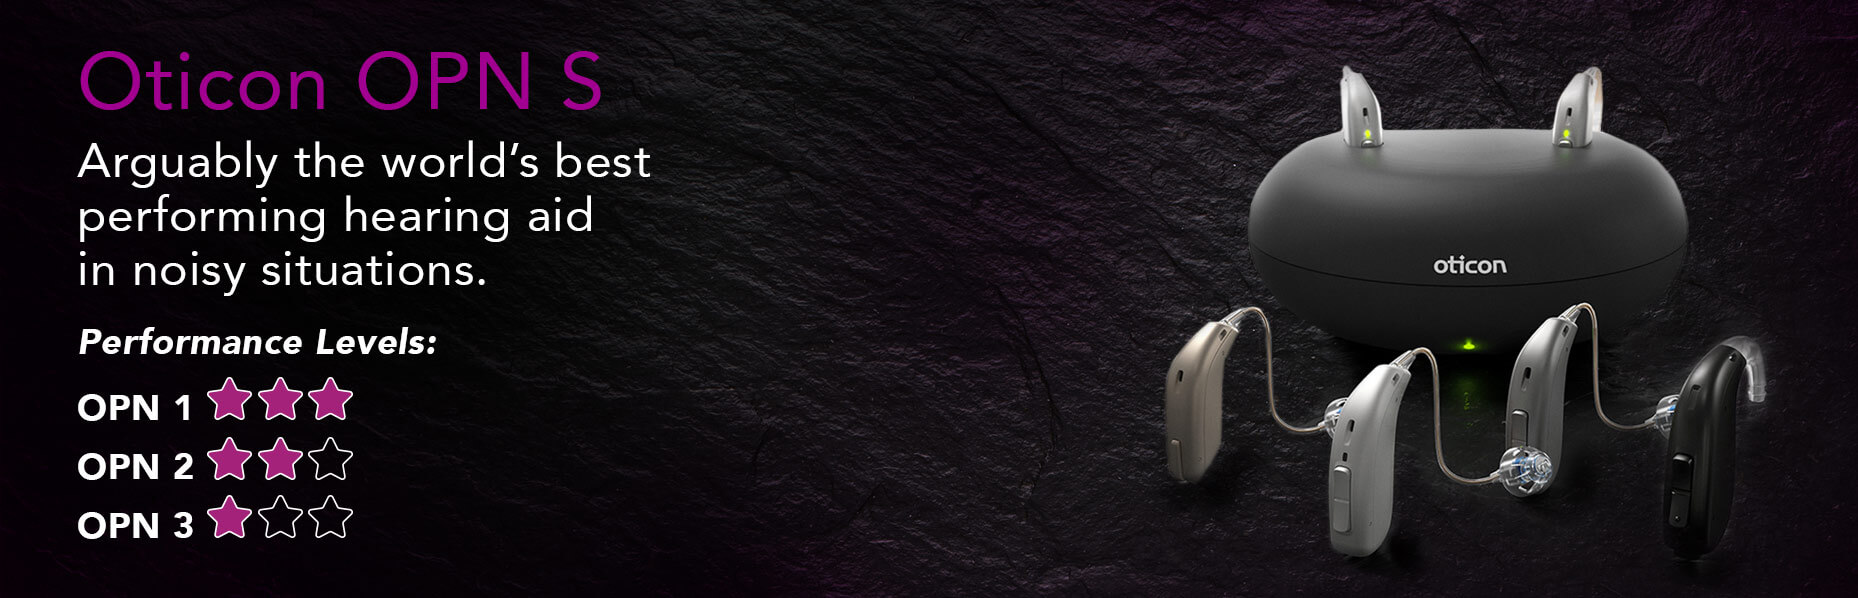 The Oticon Opn S1 hearing aid range sits on the right side of a dark rock-textured surface with content details about the device on the left